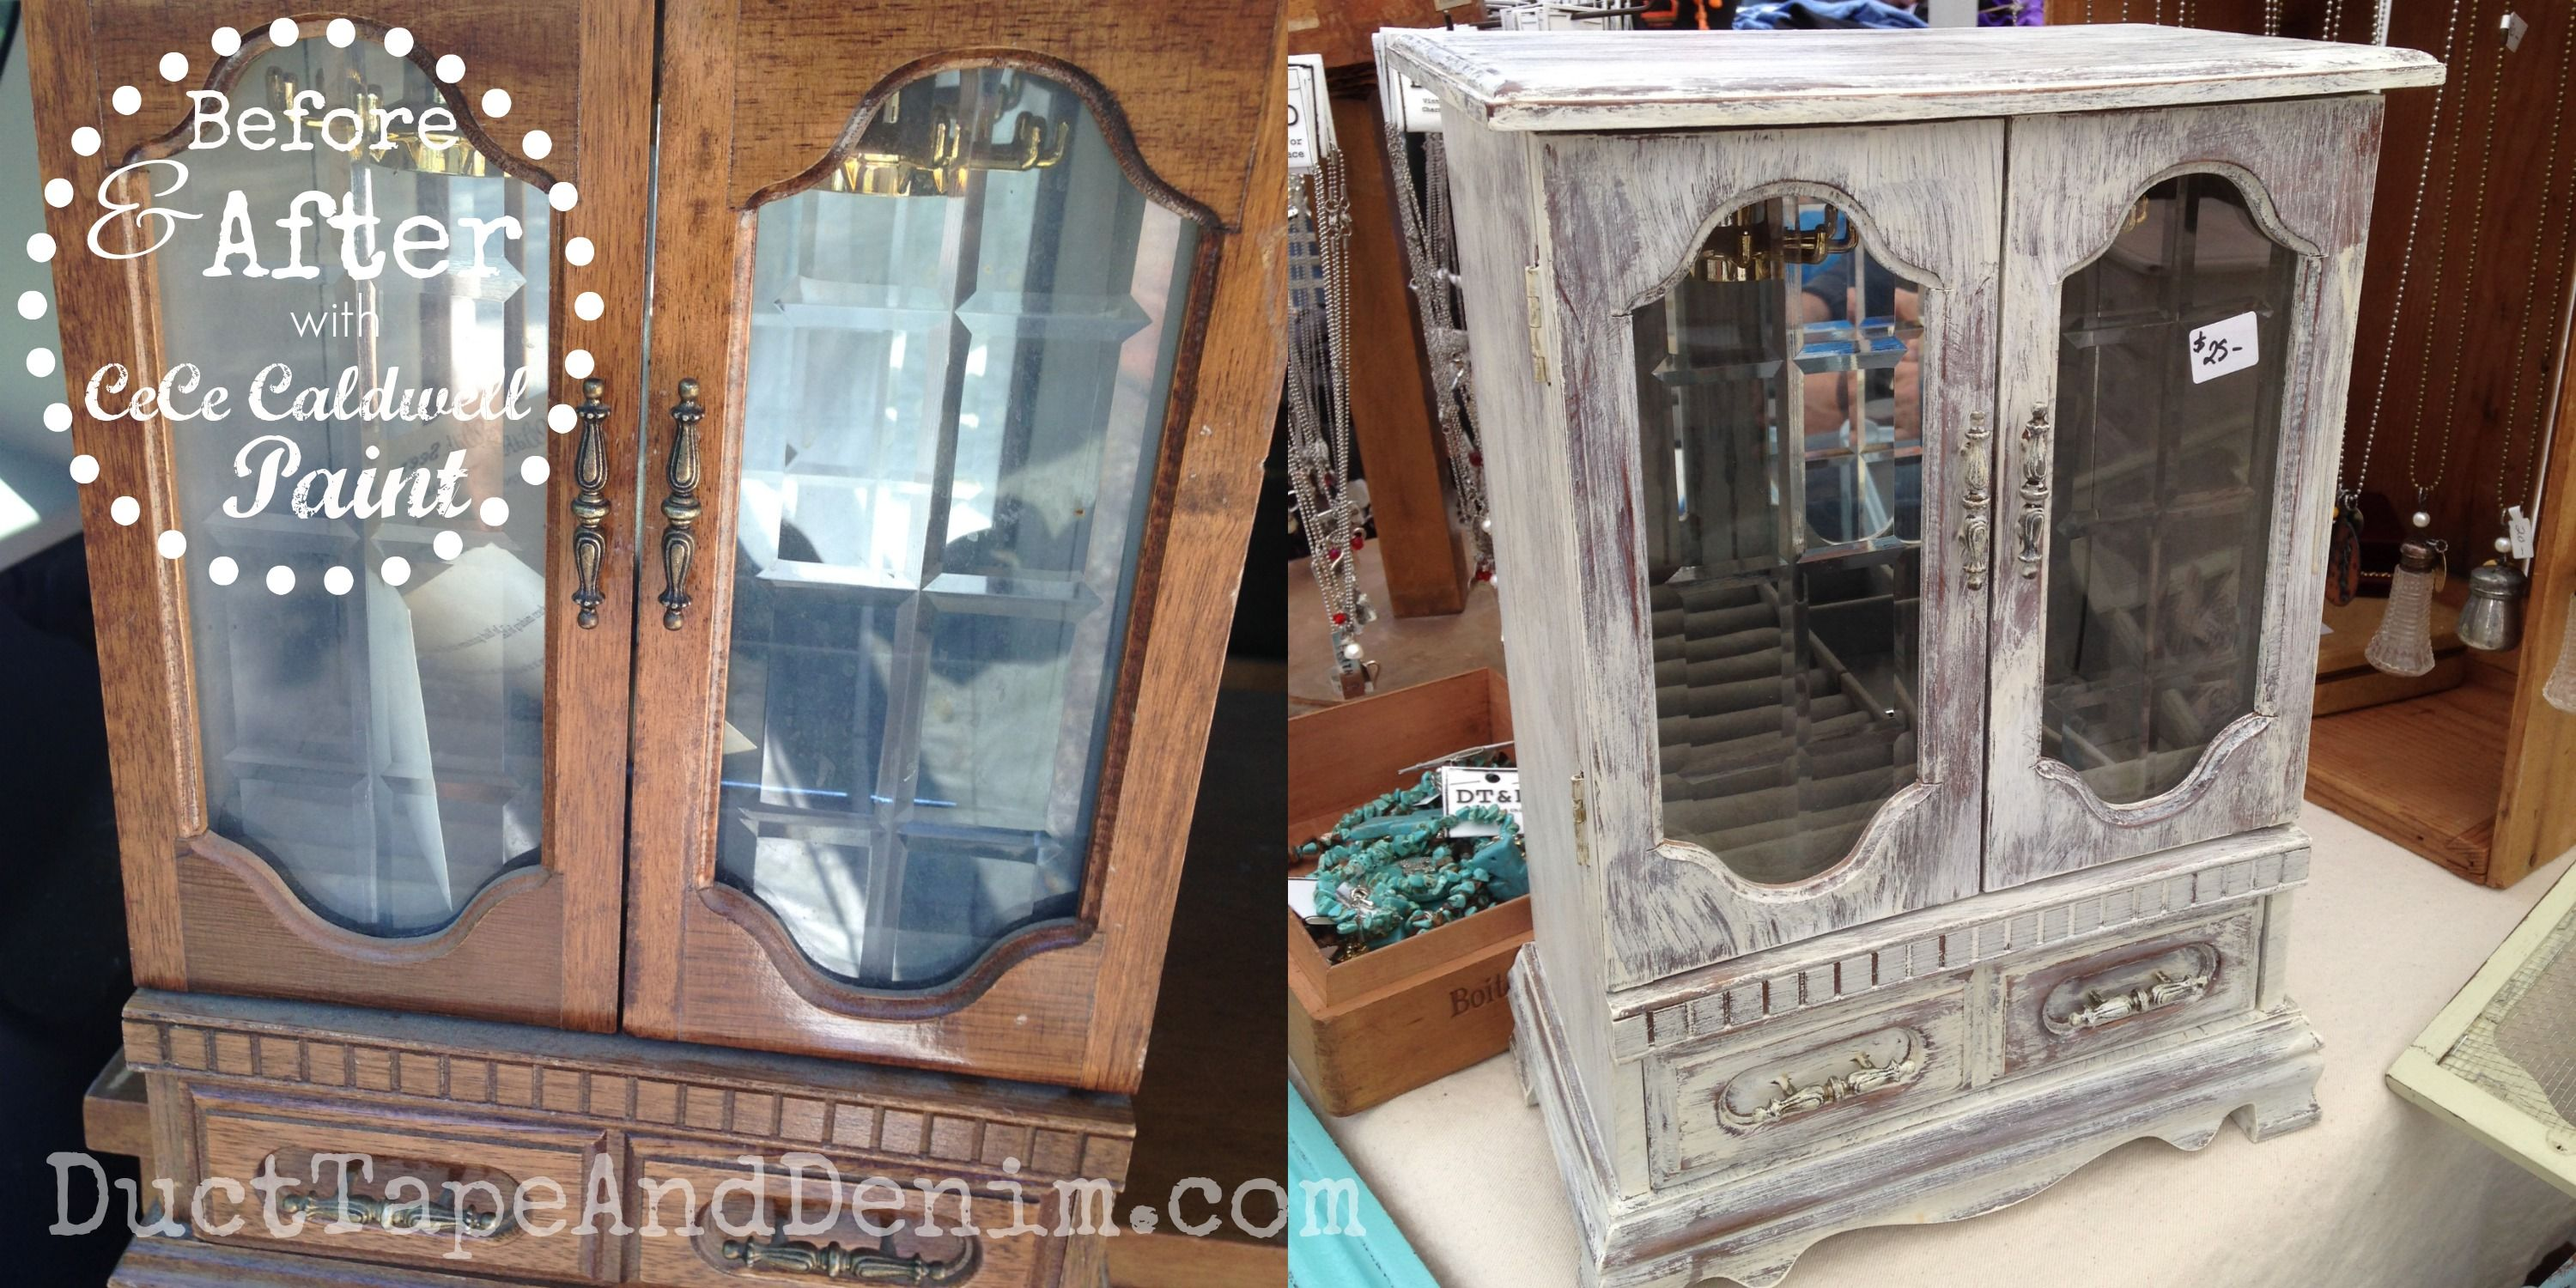 Before and after jewelry cabinet dry brush painted with CeCe Caldwell paints in Vintage White | DuctTapeAndDenim.com